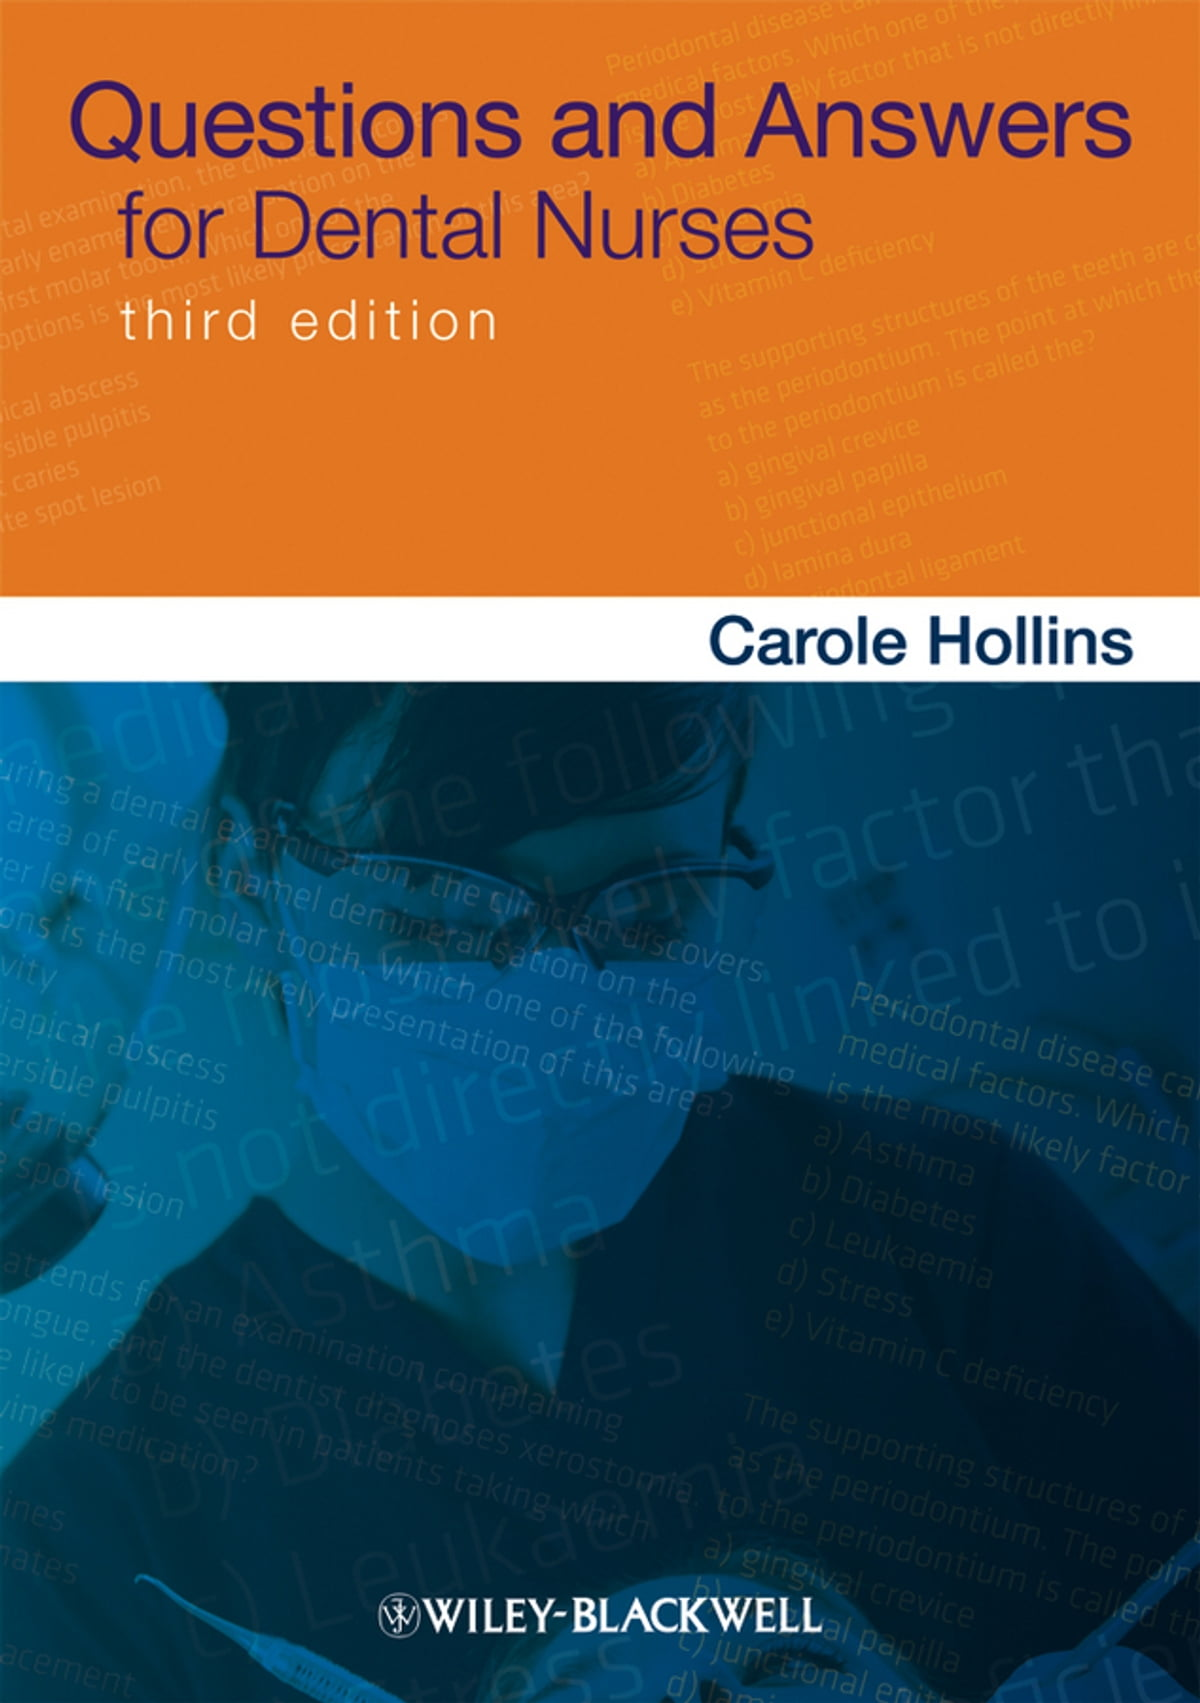 Workbooks workbook to accompany medical assisting answers : Questions and Answers for Dental Nurses eBook by Carole Hollins ...